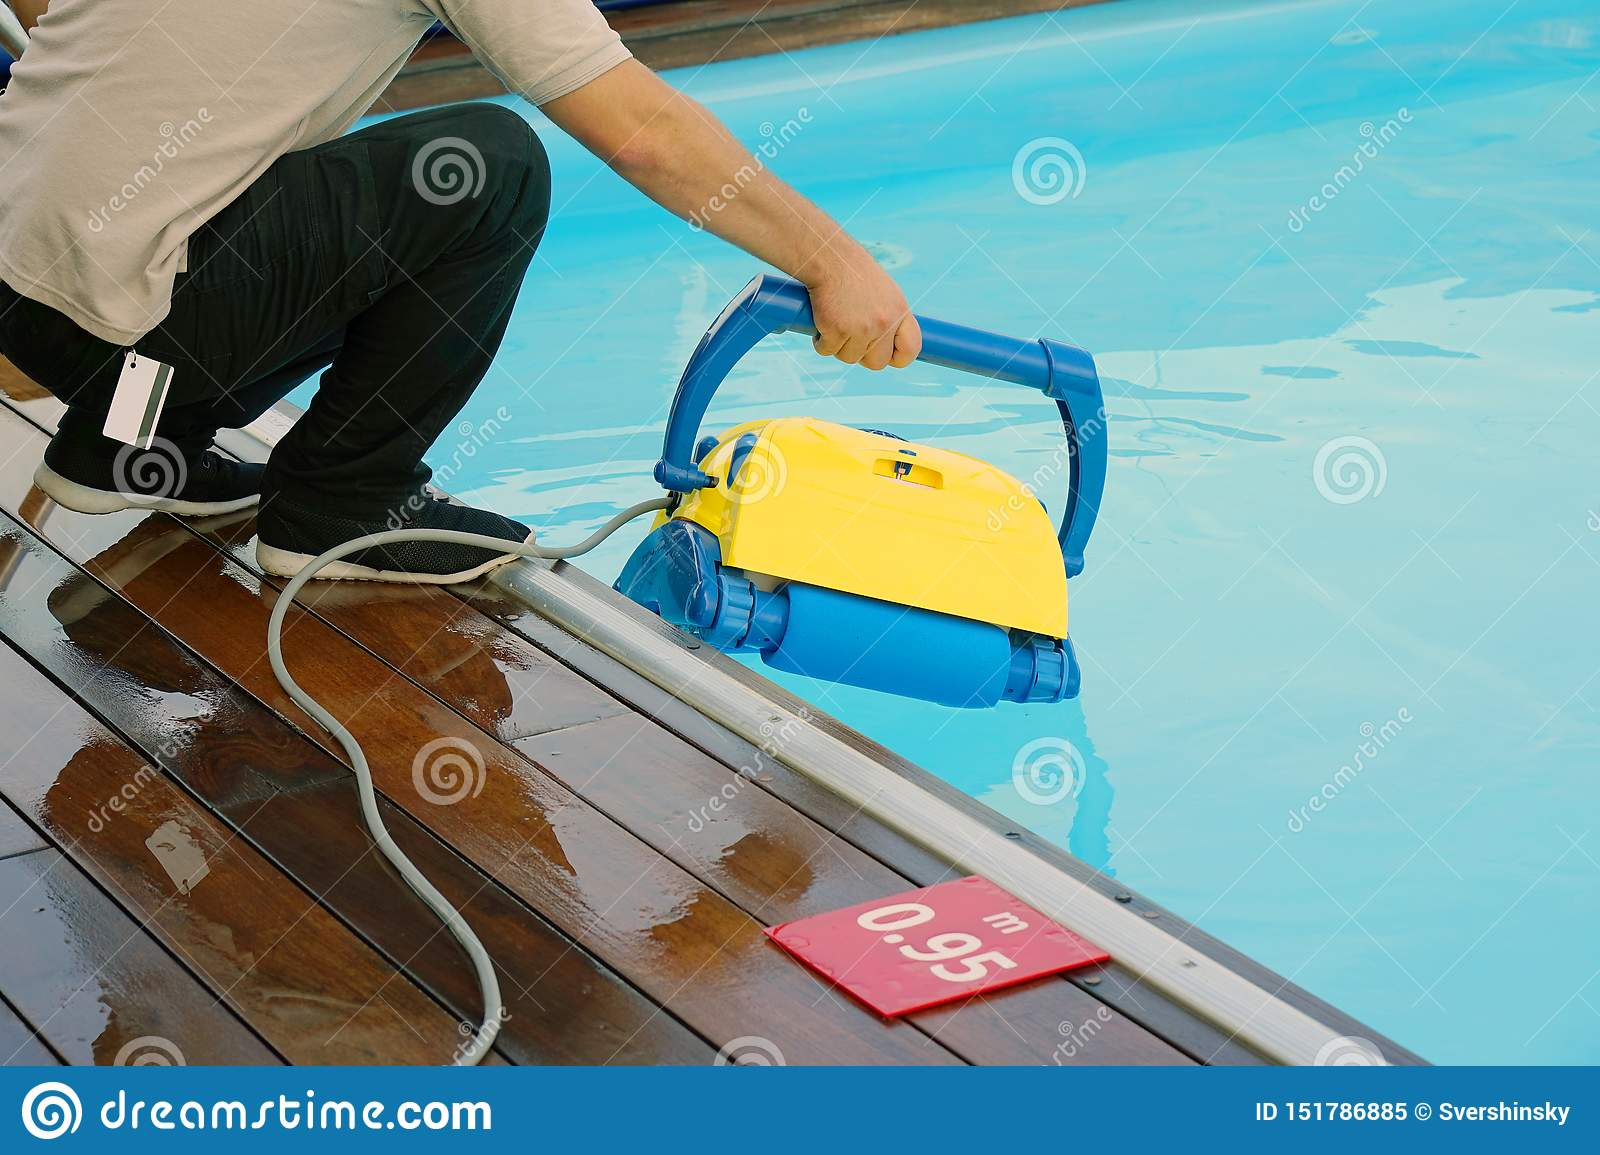 Automatic pool cleaners stock image. Image of equipment ...